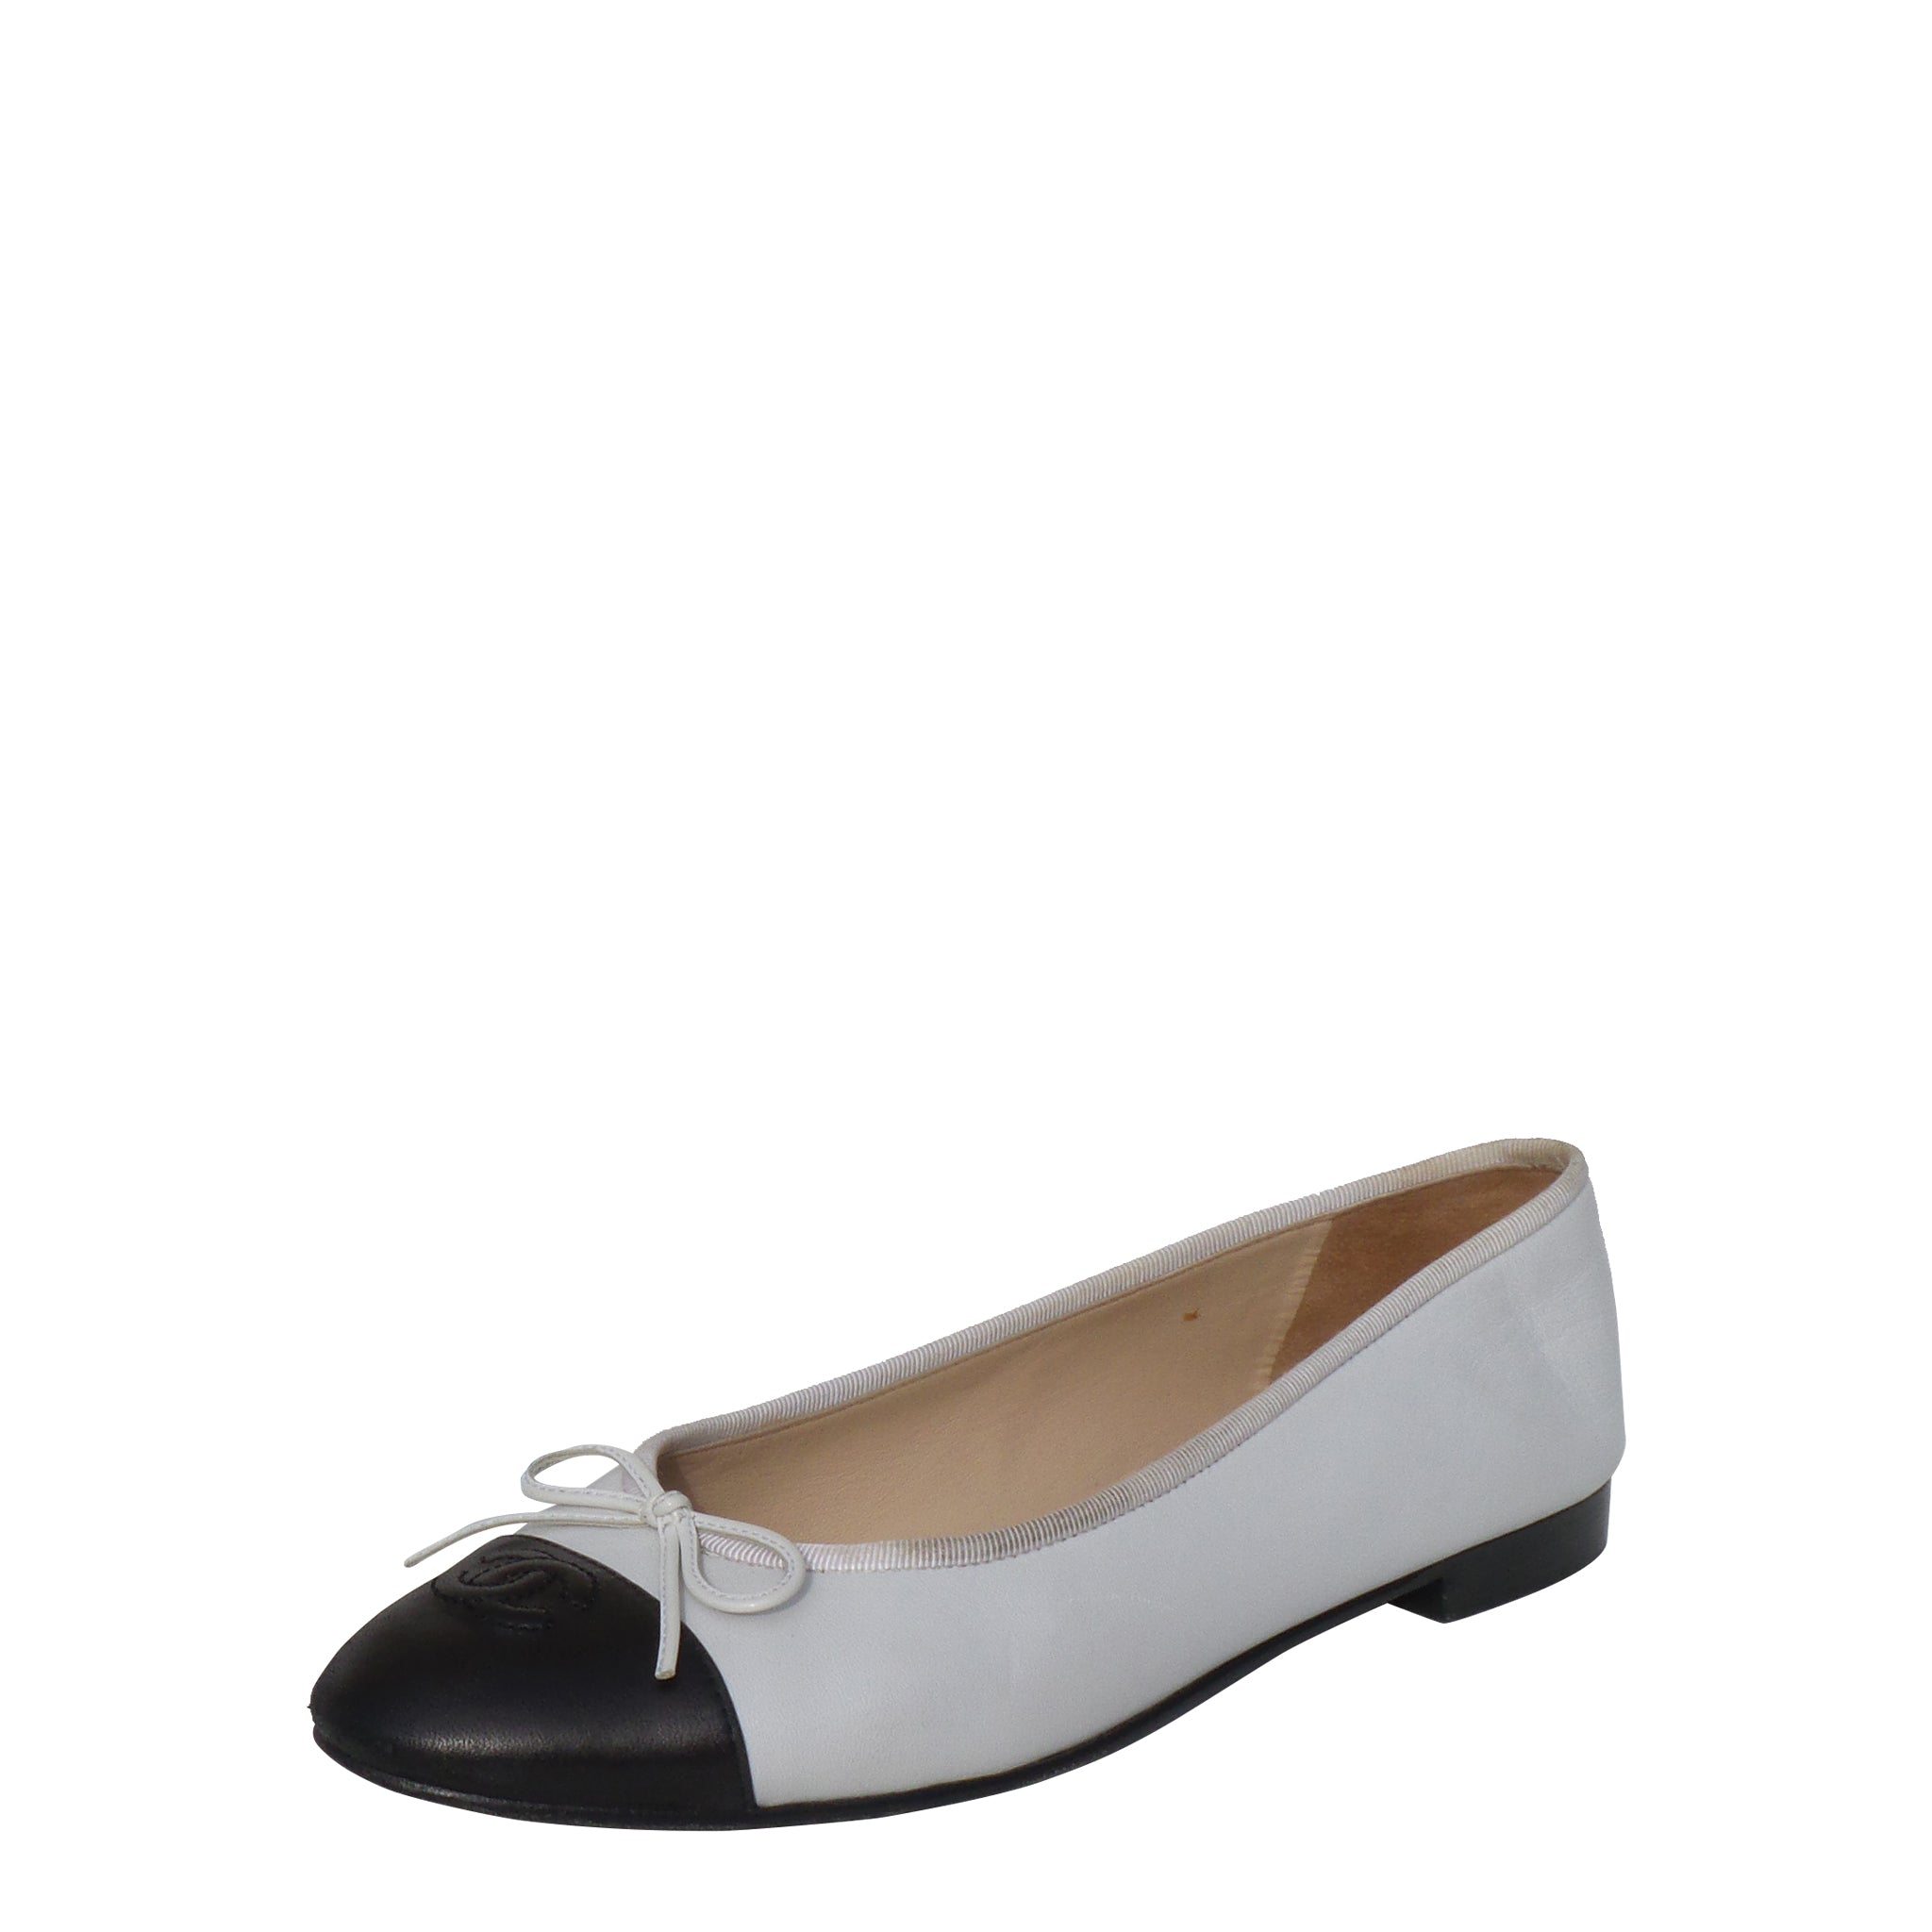 'Sold' CHANEL White Leather Black CC Cap Toe Bow Ballet Flats Ballerinas 40 FUC